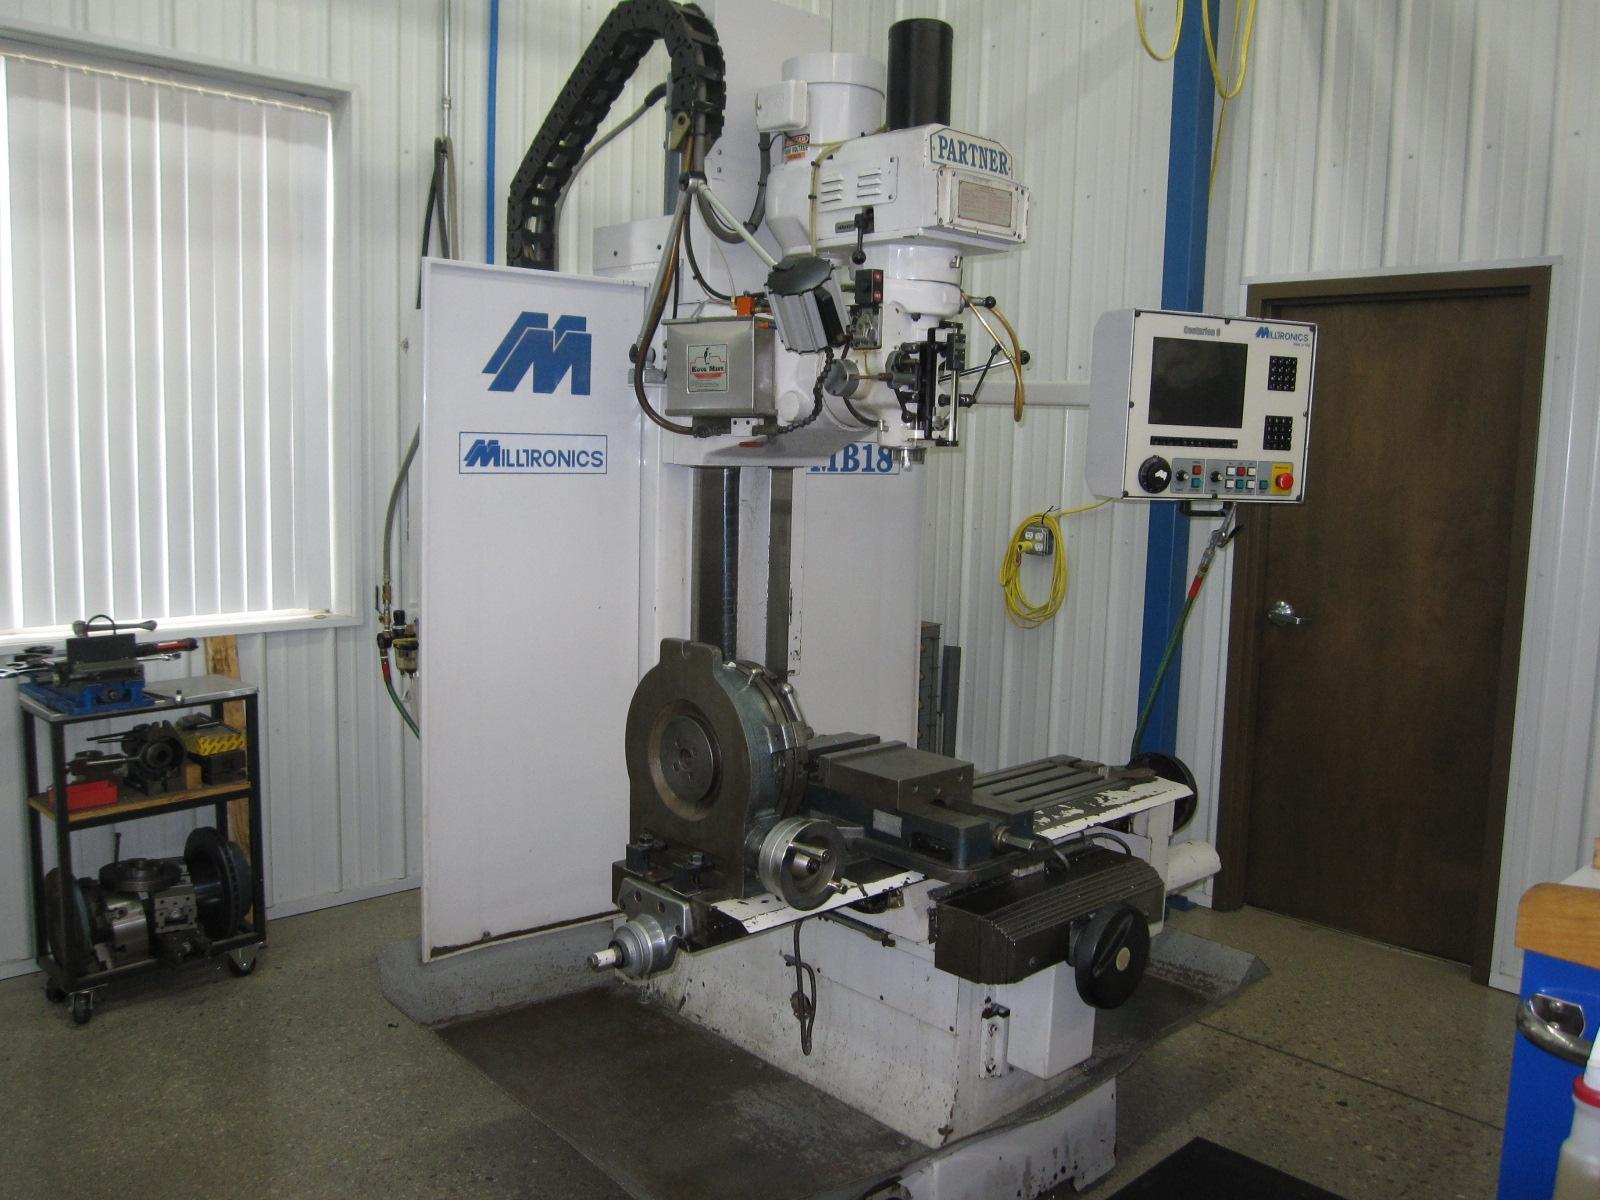 Milltronics MB18-A 3-Axis CNC Vertical Bed Mill, S/N 5573, New 1999.